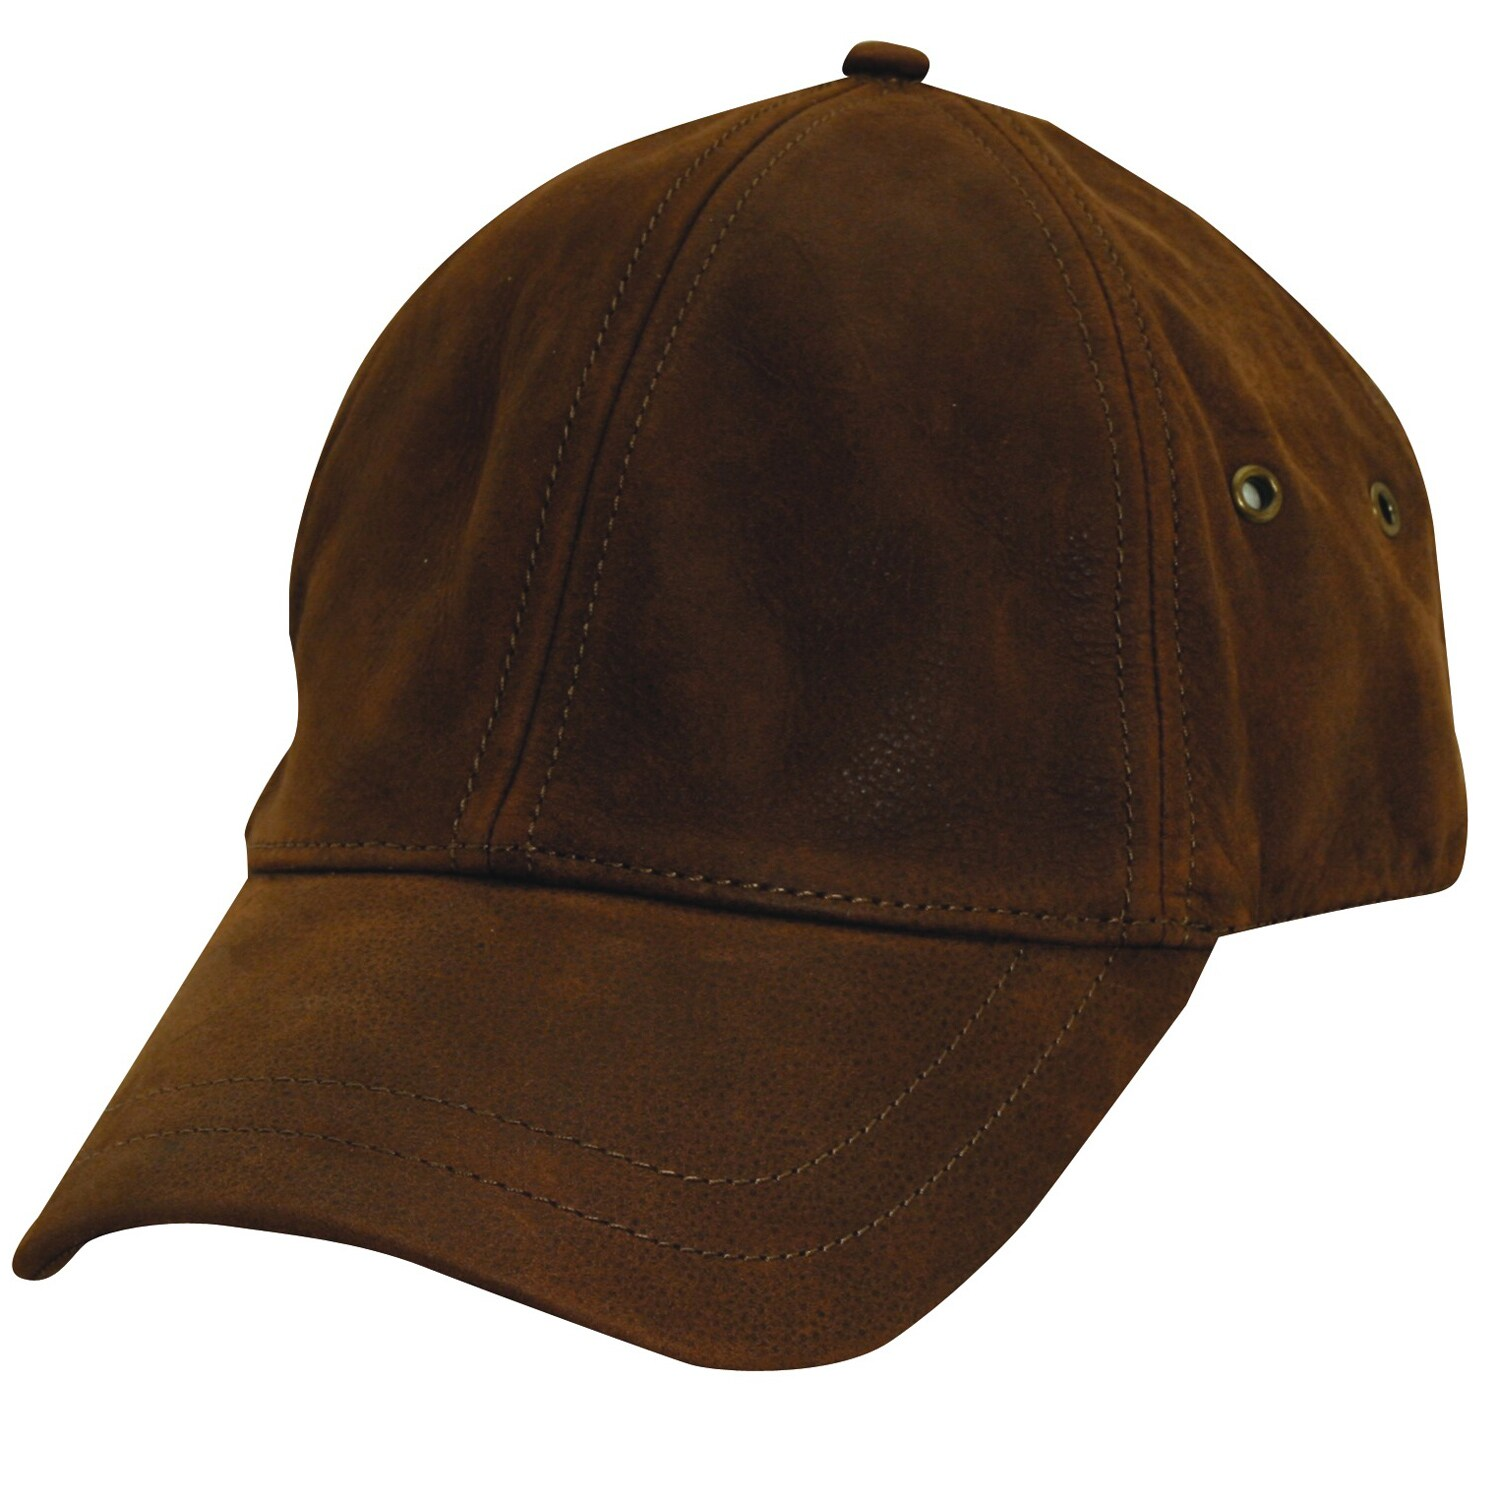 Stetson Men's 'Oily Timber' Brown Leather Cap - Thumbnail 0